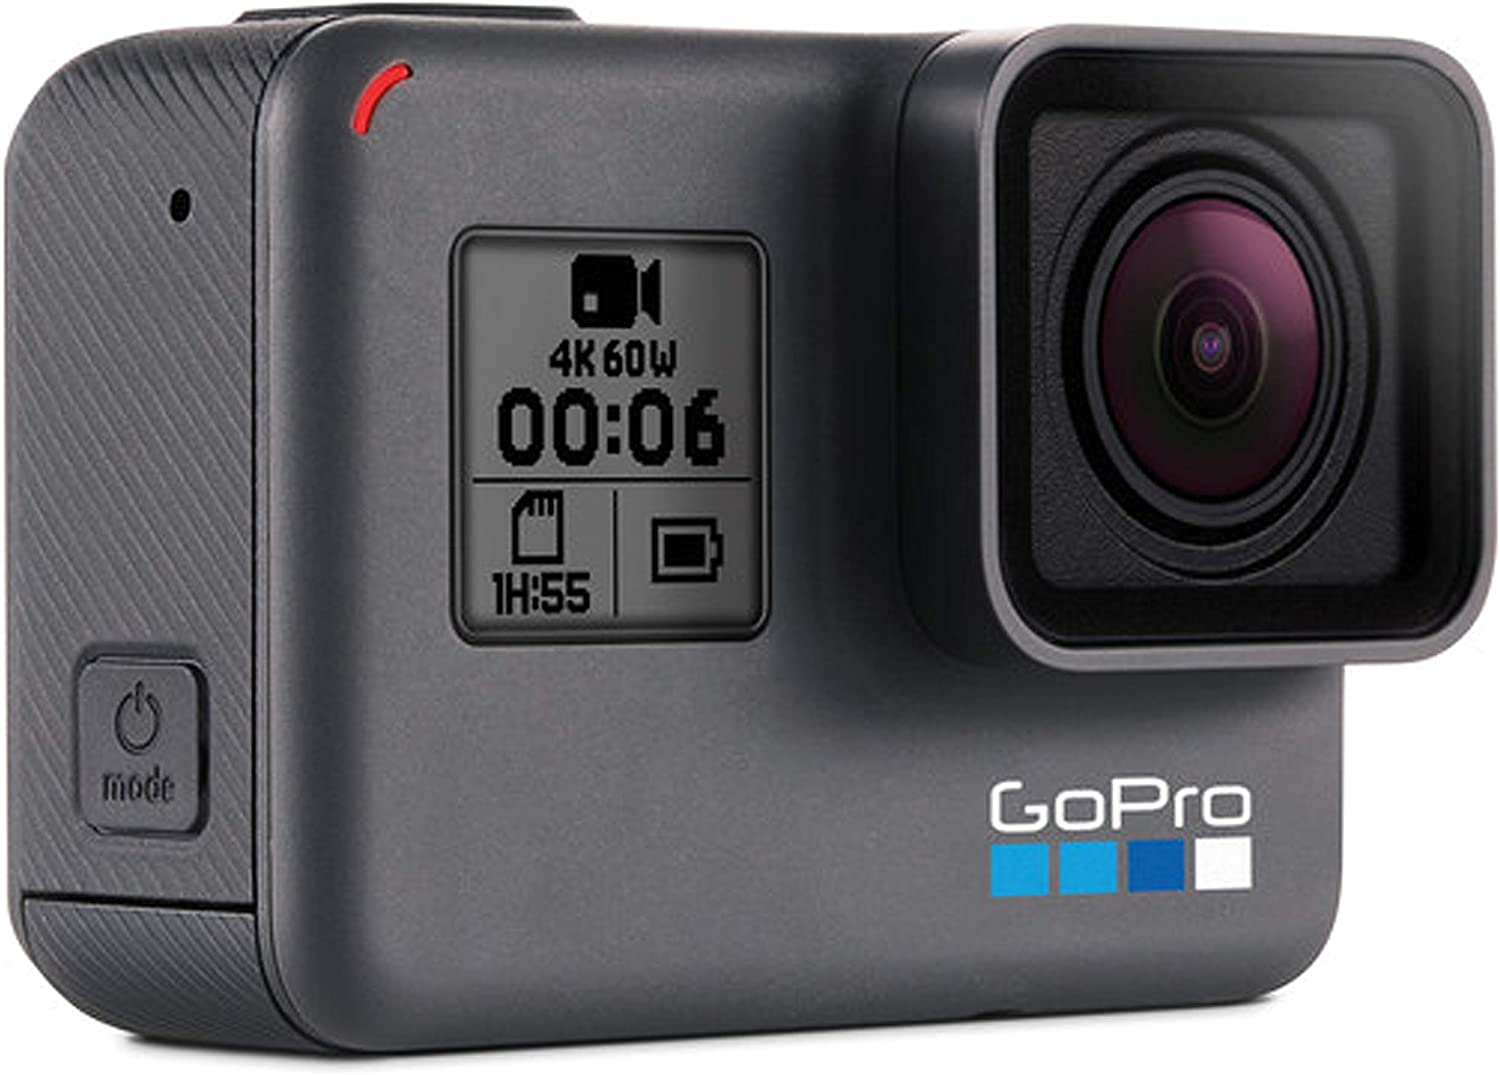 GOPRO HERO 6 - Best GoPro for Hunting